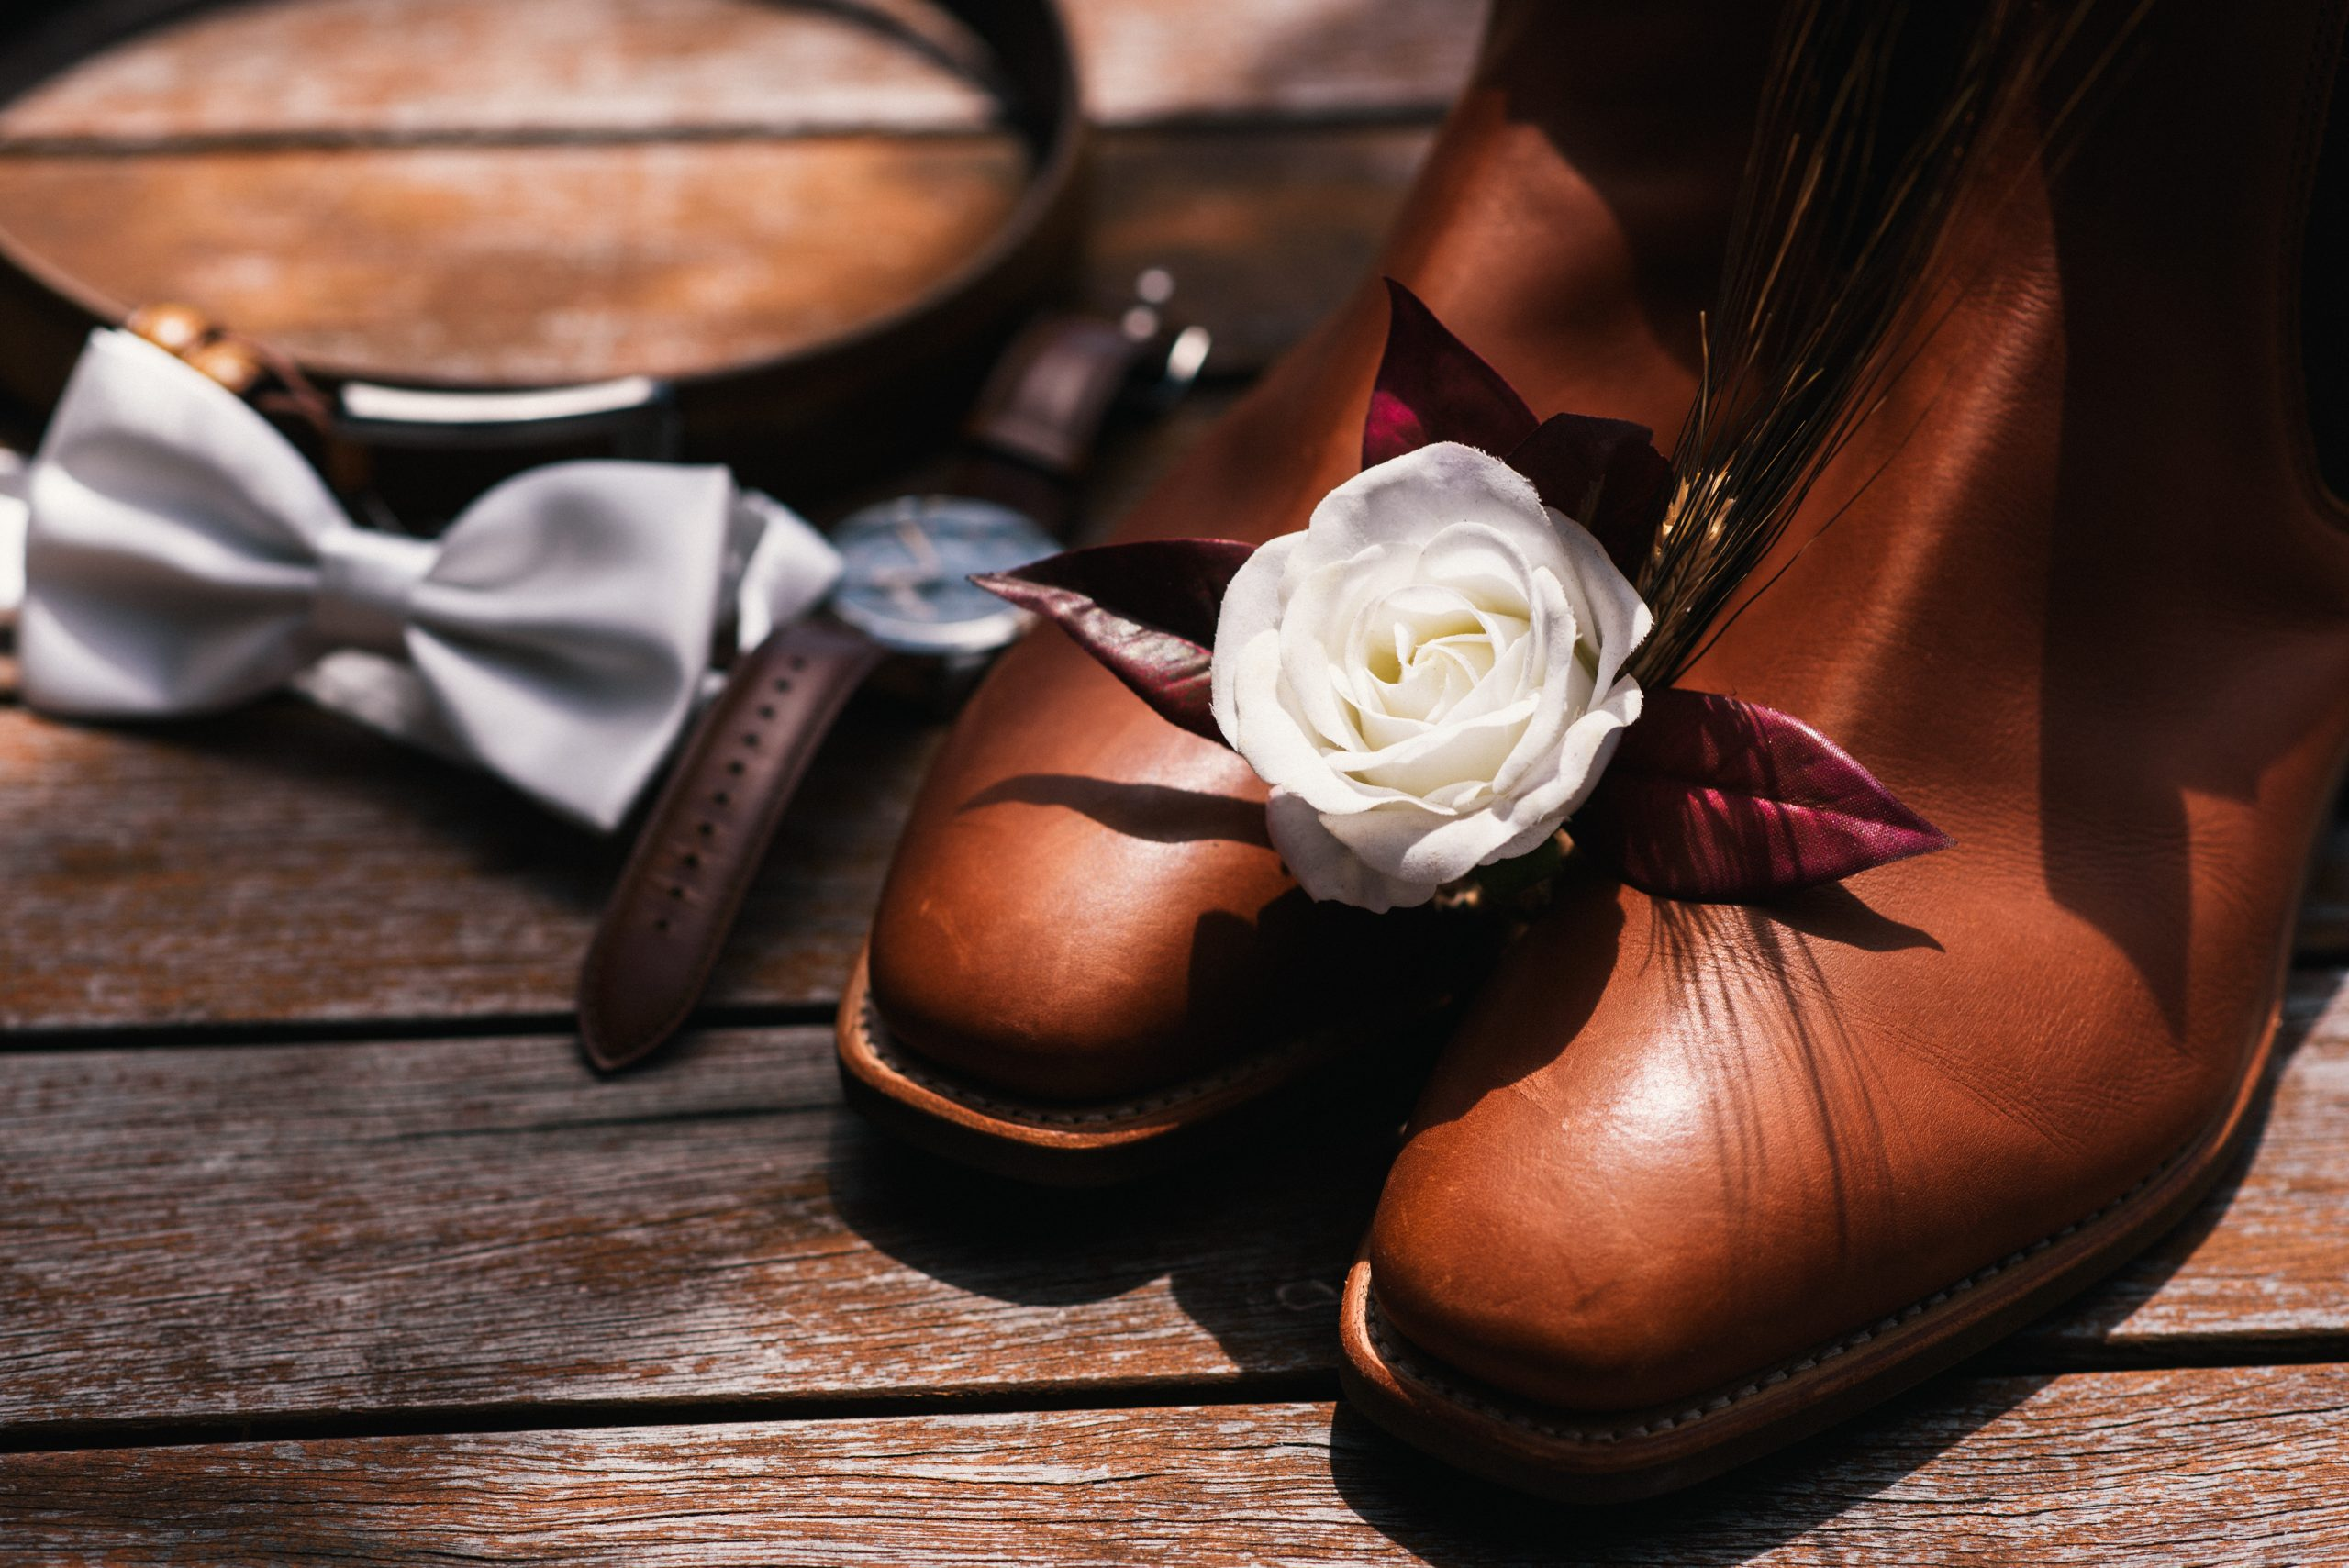 grooms boots, flower and watch